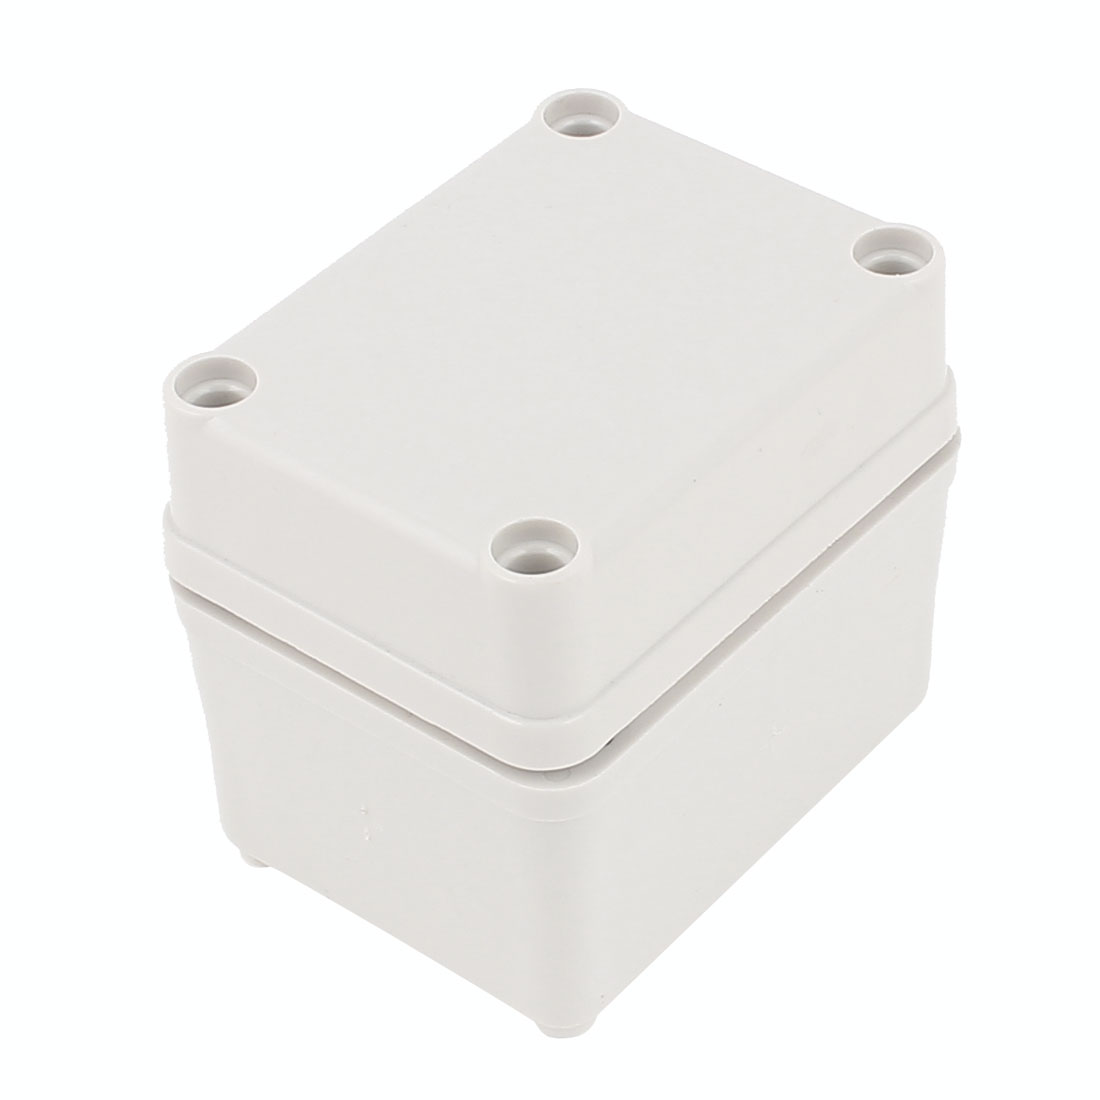 65mm x 50mm x 55mm Plastic Dustproof IP56 Sealed Enclosure Case DIY Electrical Junction Box